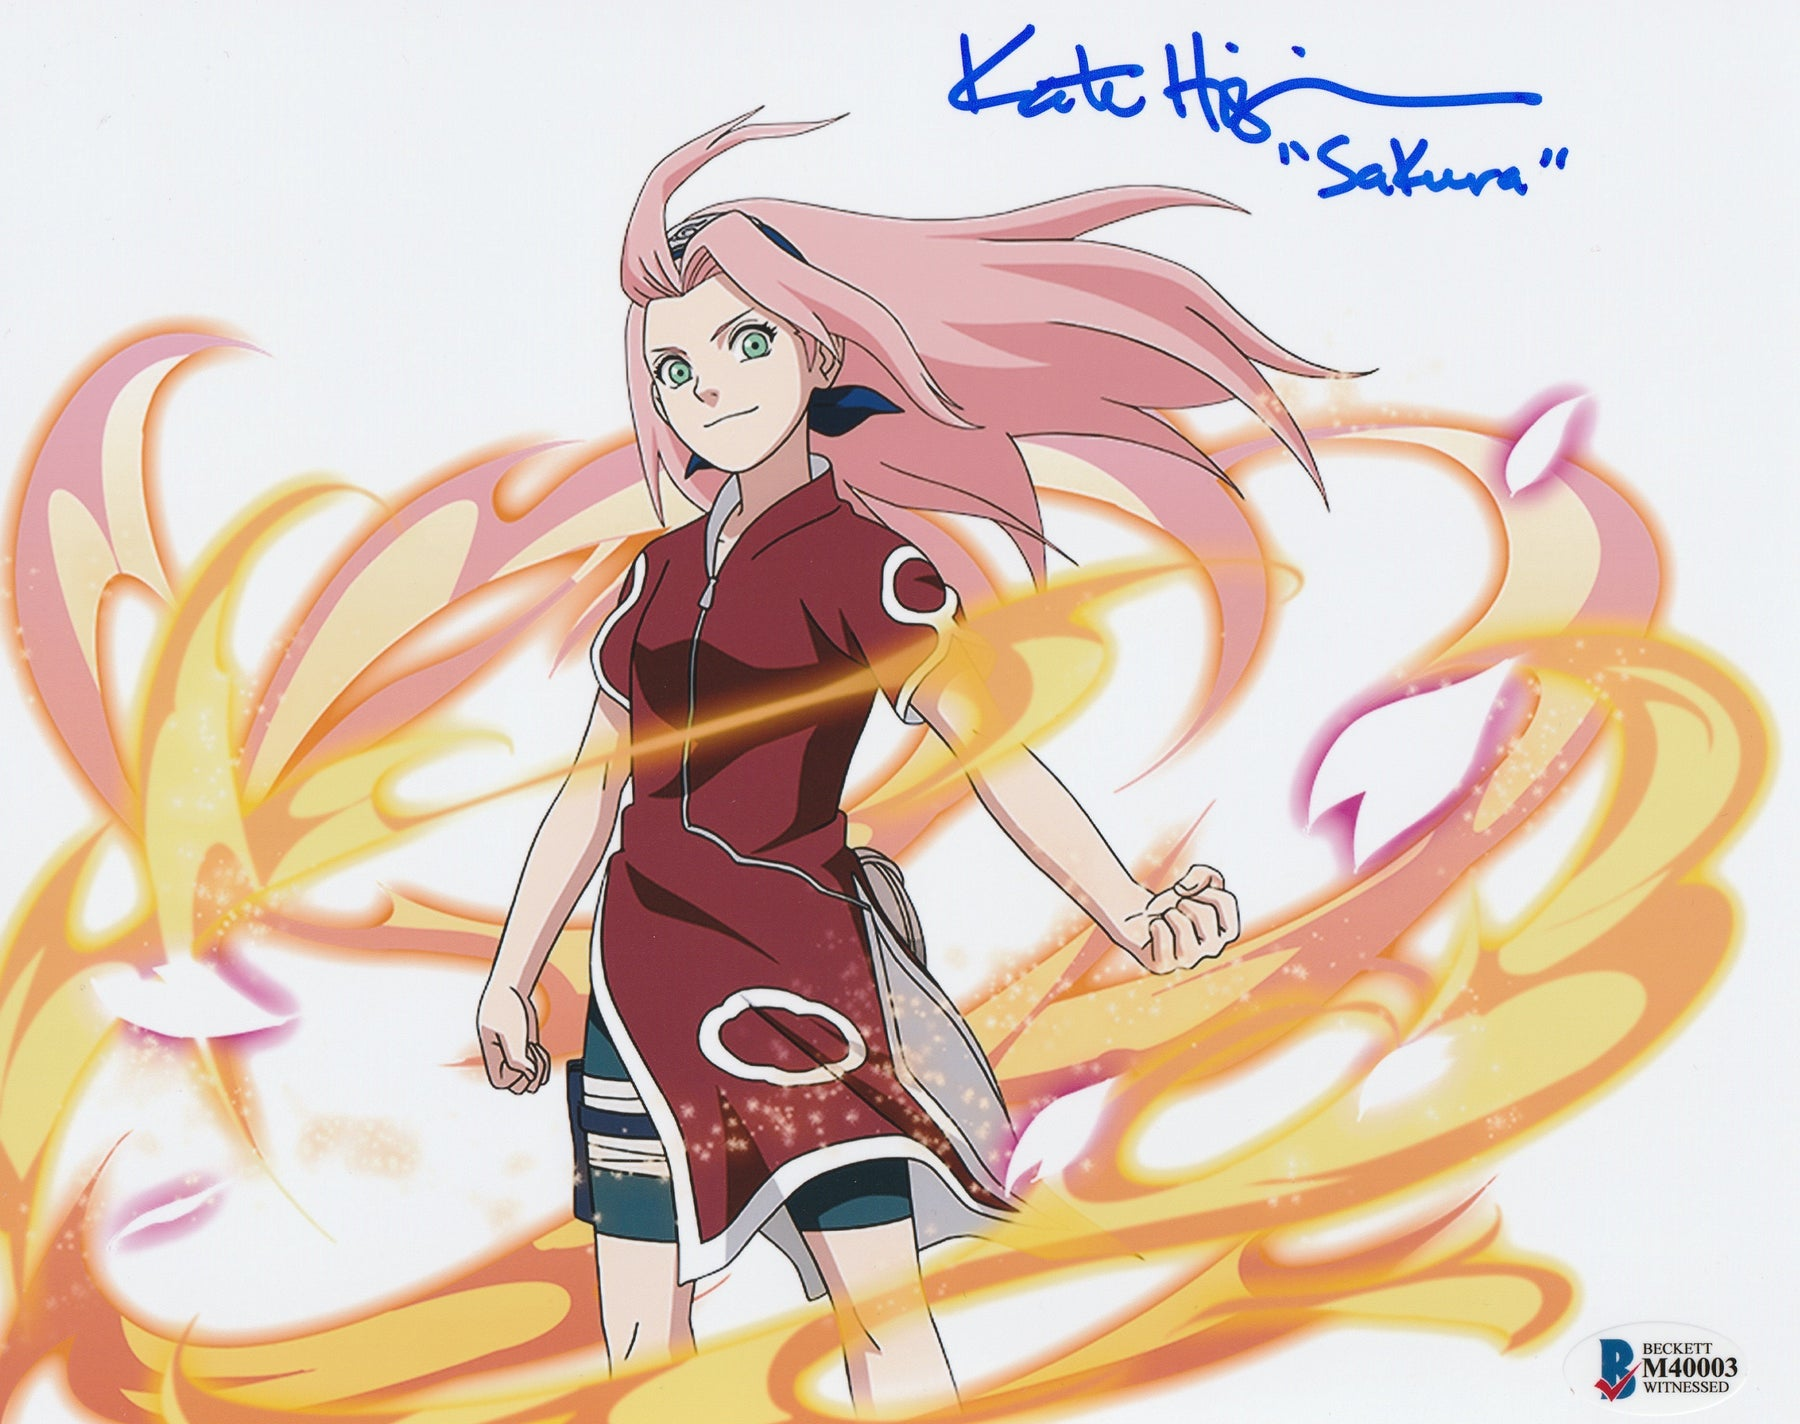 Kate Higgins Autograph 8x10 Photo Naruto Sakura Signed BAS COA